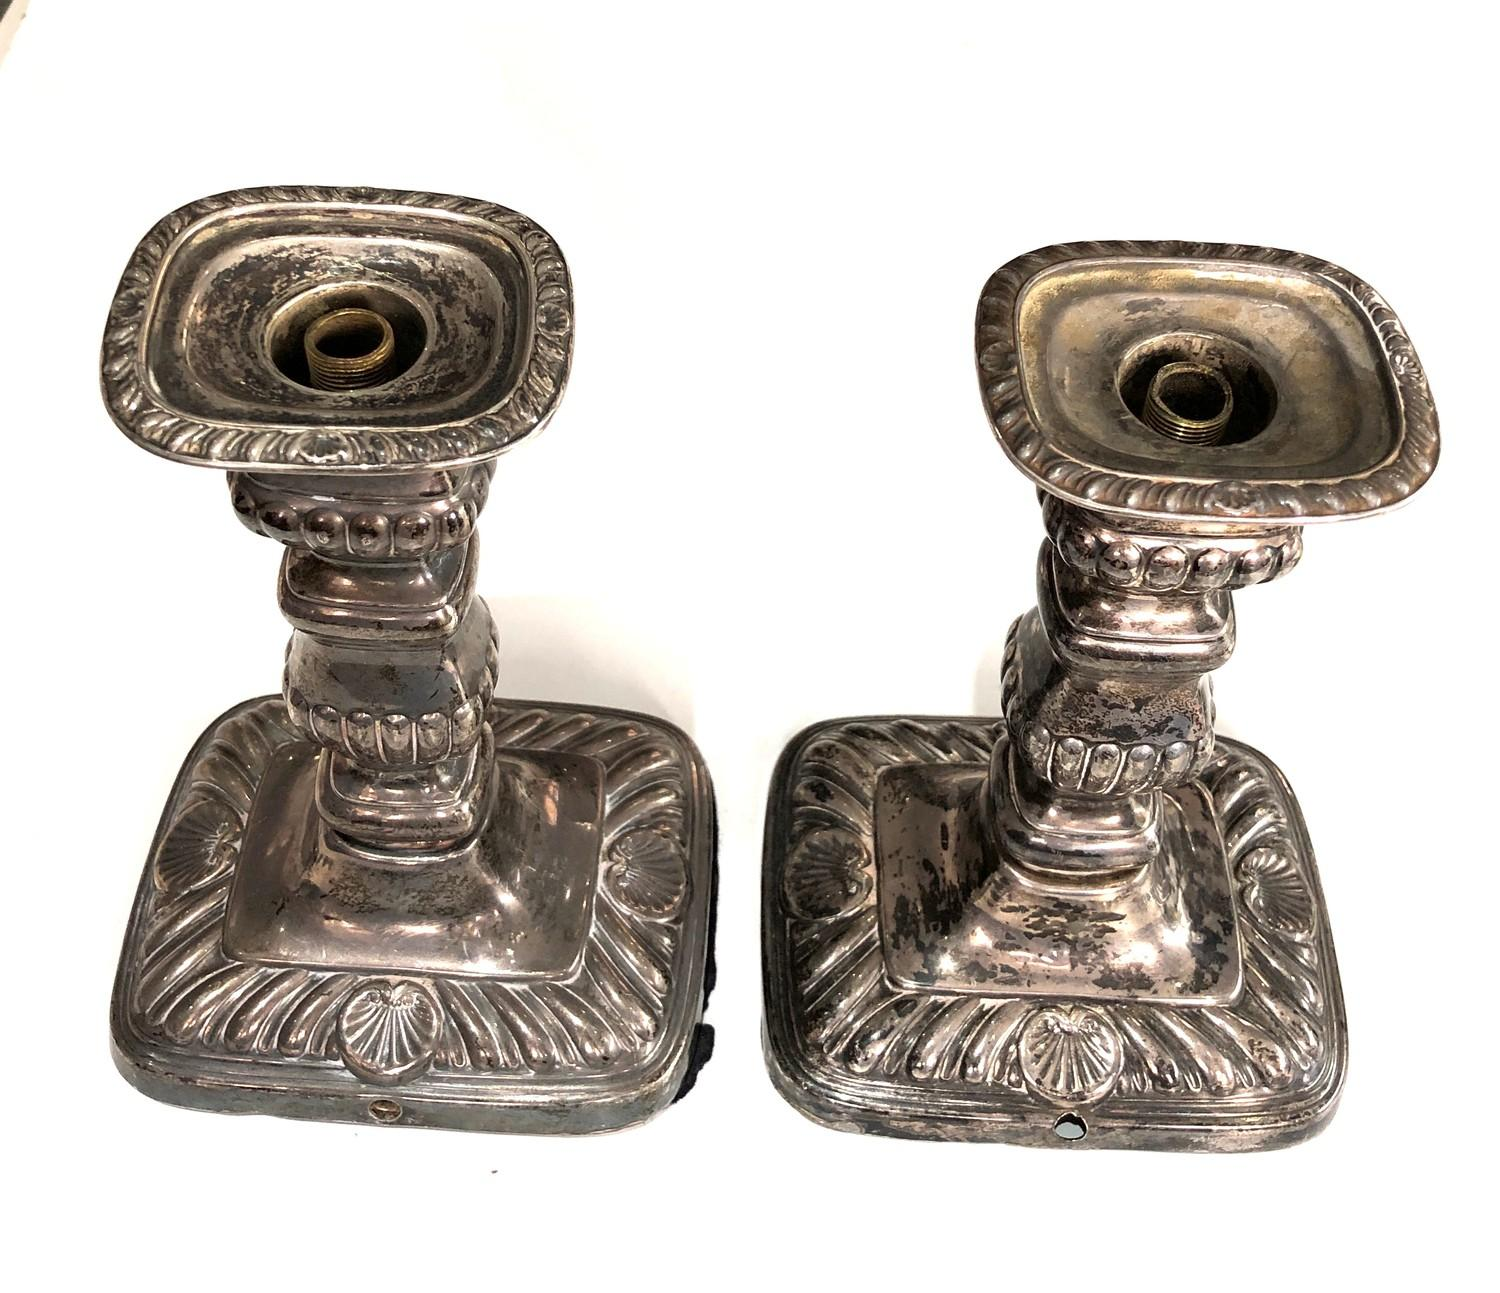 A pair of Edwardian silver rounded rectangular candlesticks, 18cm high London 1906, fitted as - Image 5 of 7